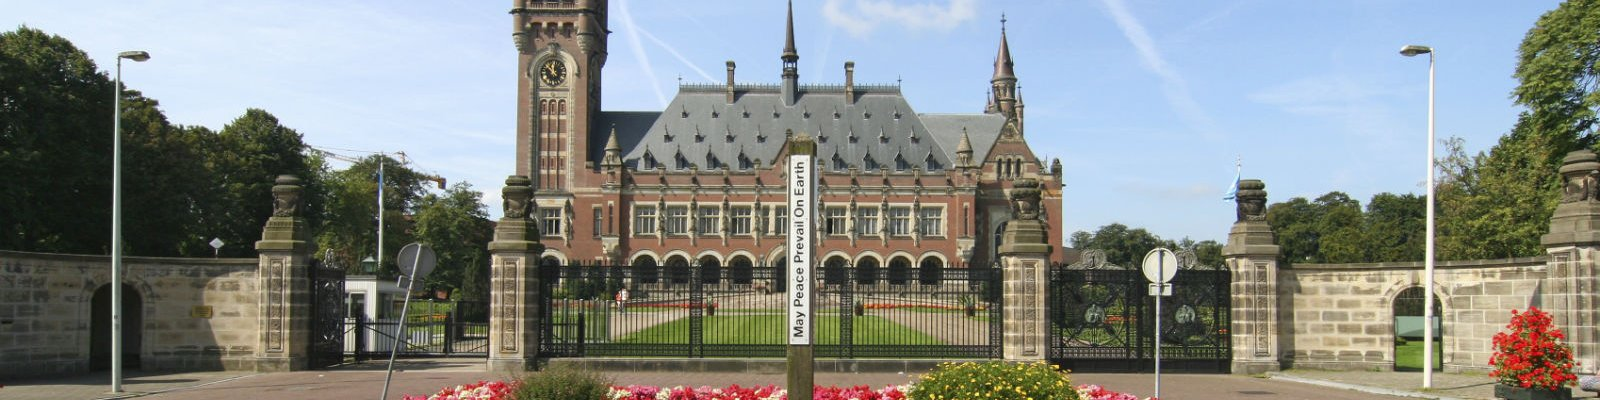 UCILS - Peace Palace, The Hague